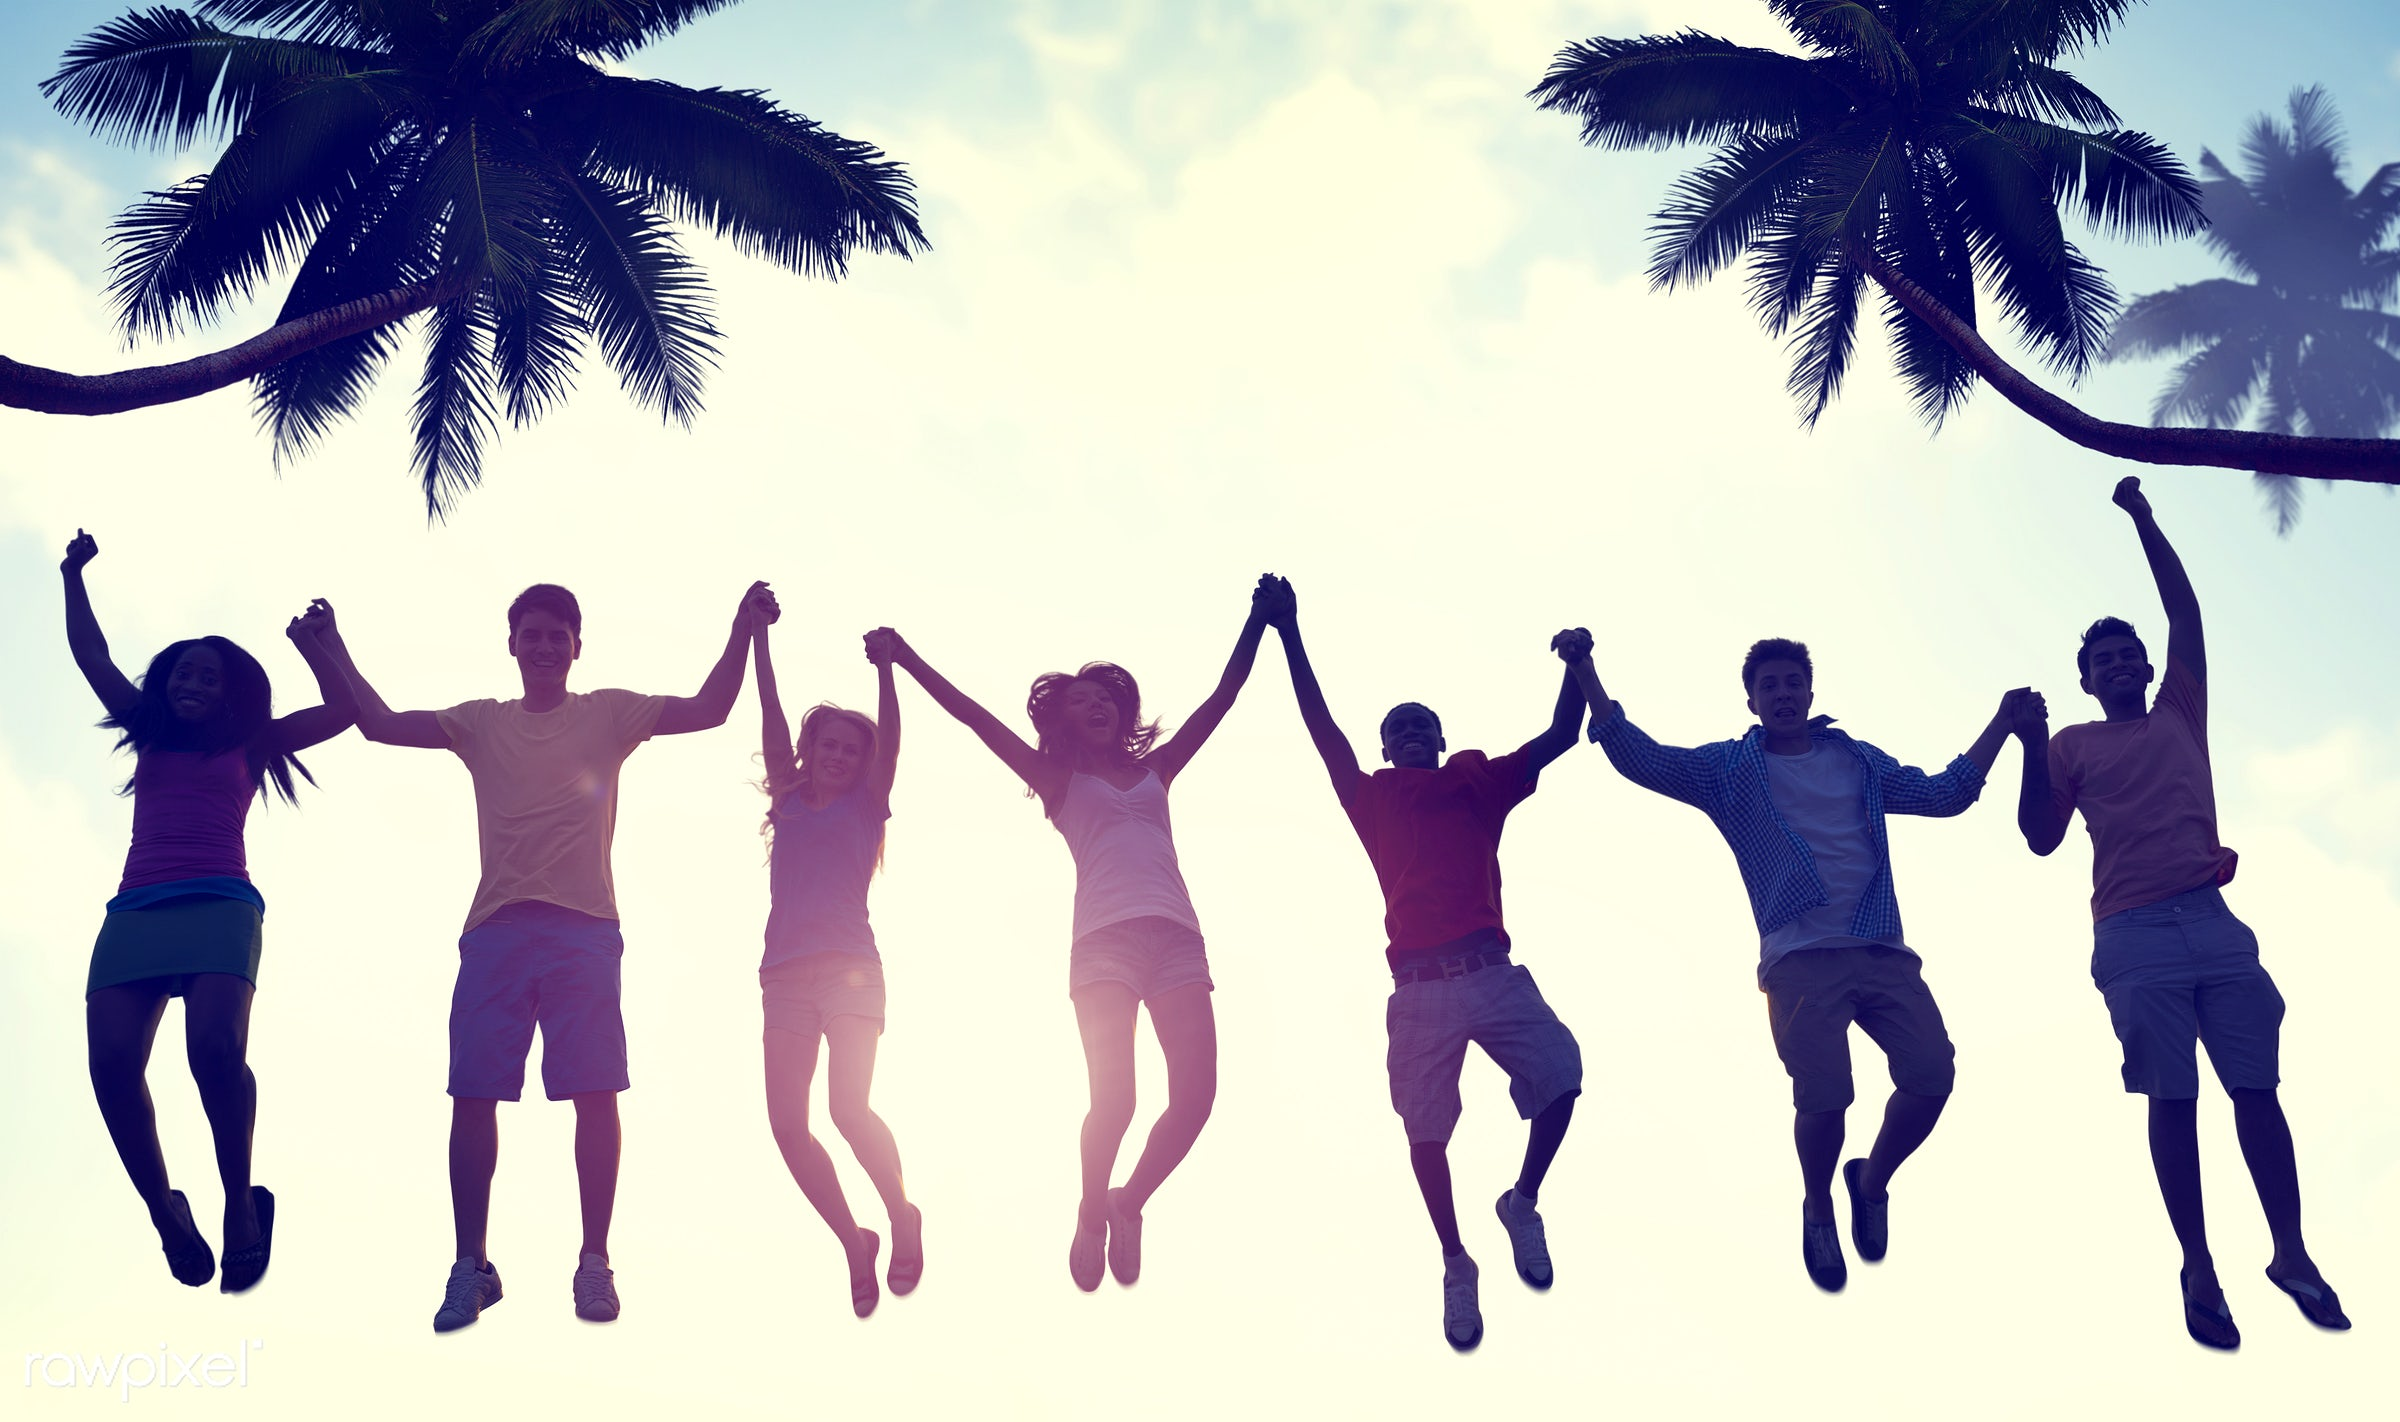 lifestyles, arms outstretched, arms raised, beach, celebration, cheerful, coconut palm tree, community, copy space, diverse...